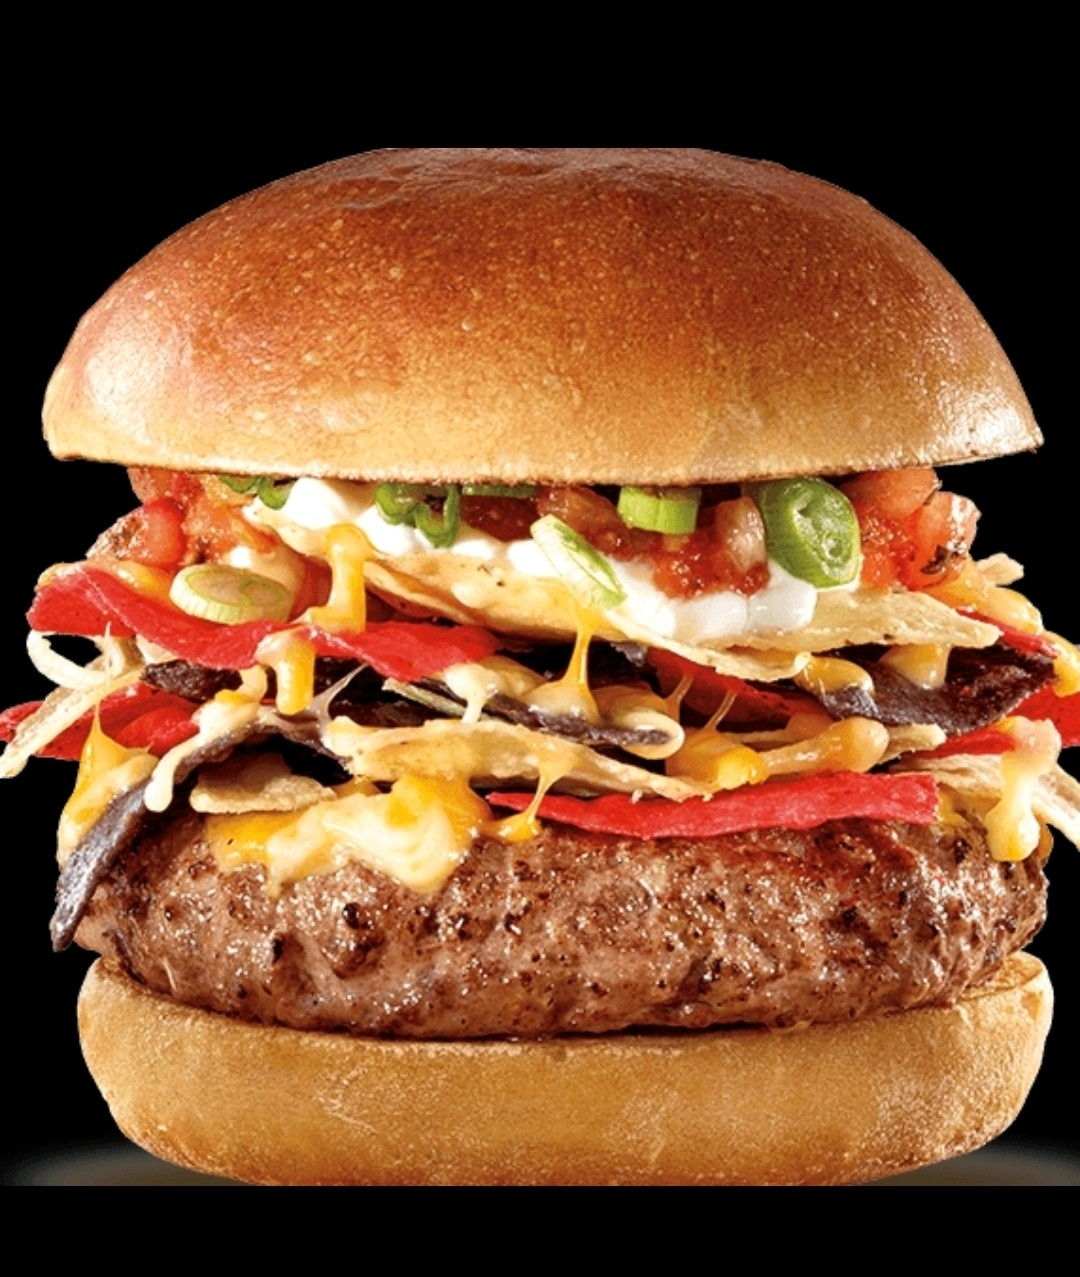 6 OZ HAMBURGER ONLY $4.99